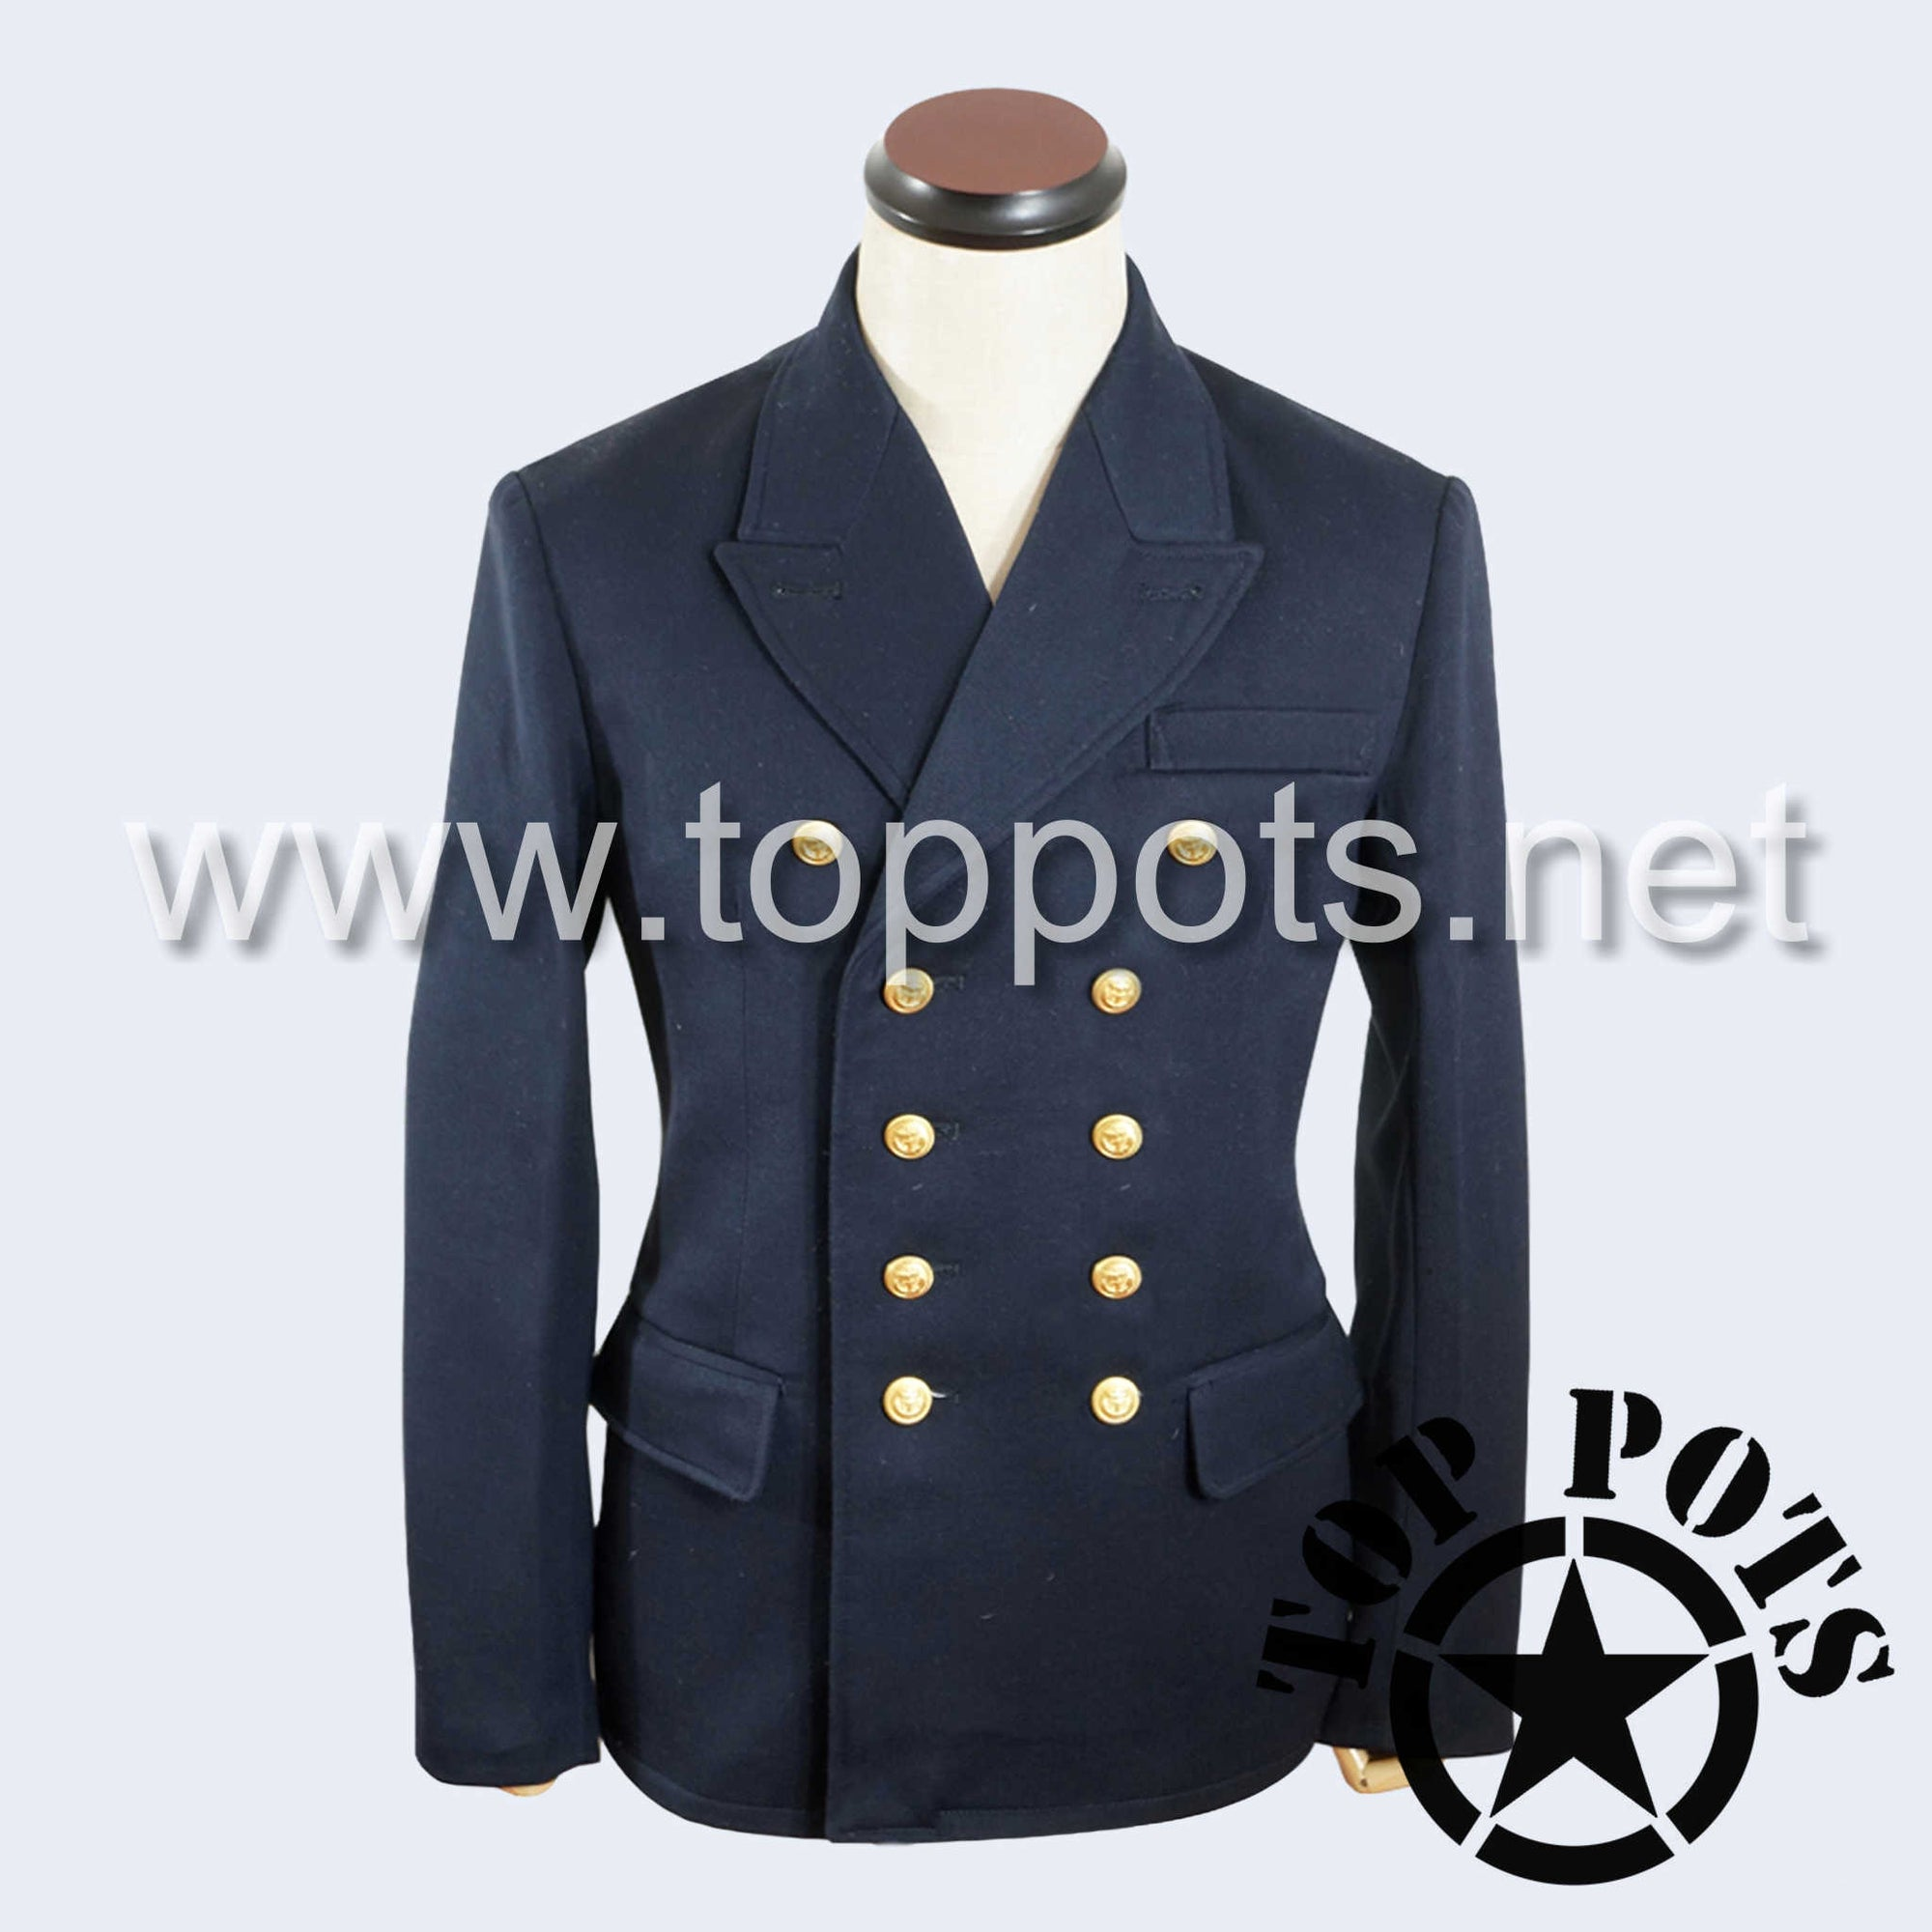 WWII German Navy Kriegsmarine Officer Uniform Jacket Pea Coat Navy Blue Gabardine - Officer Tunic